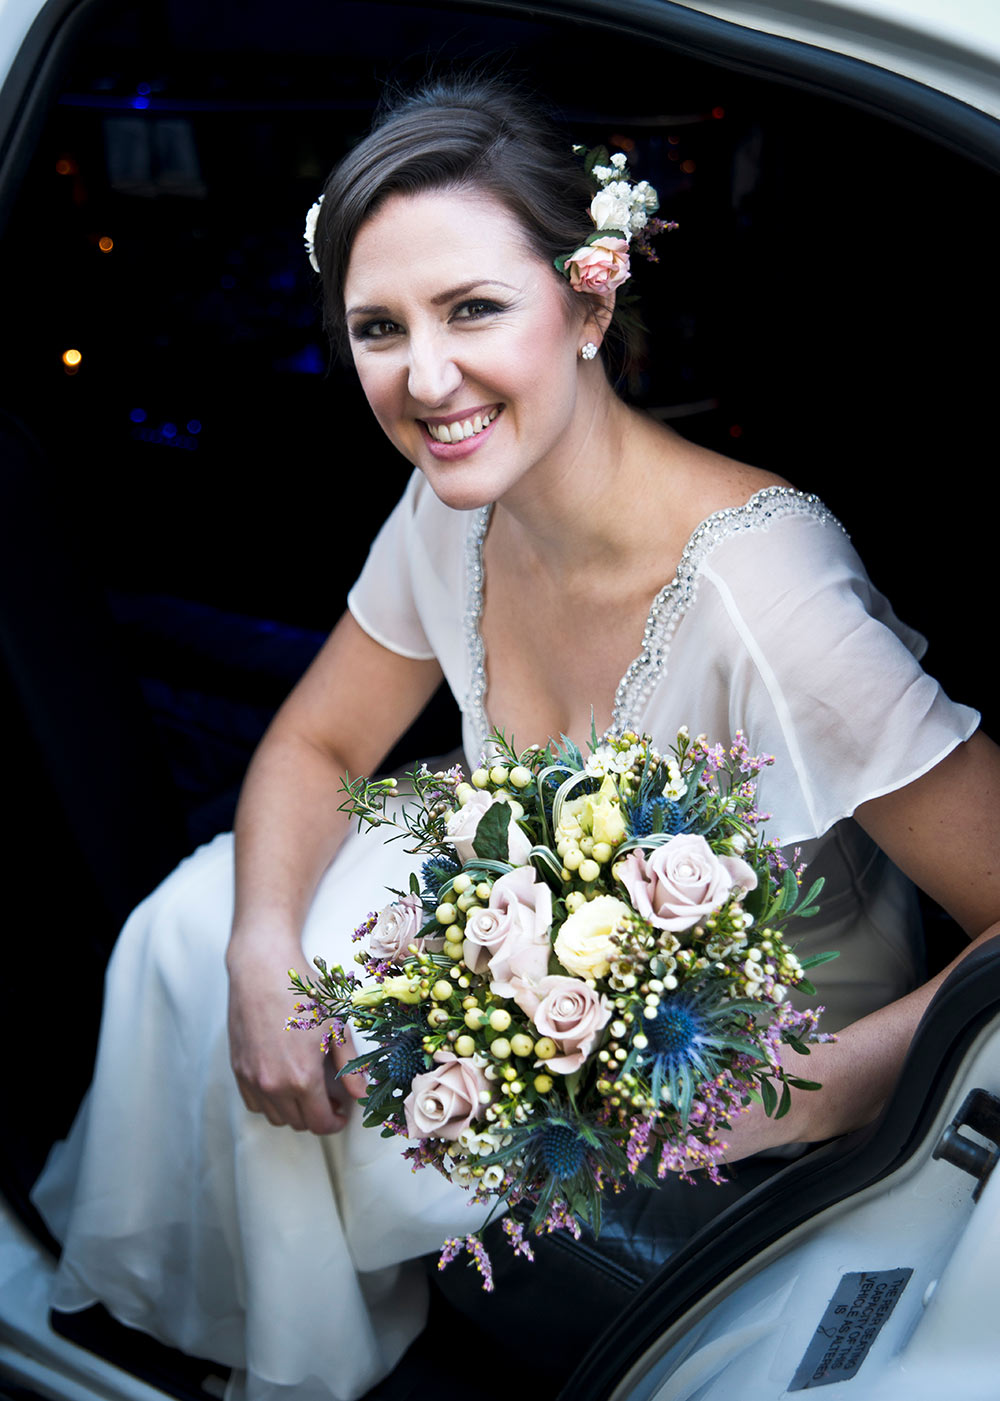 Make-up balanced to suit conditions, winter wedding planning